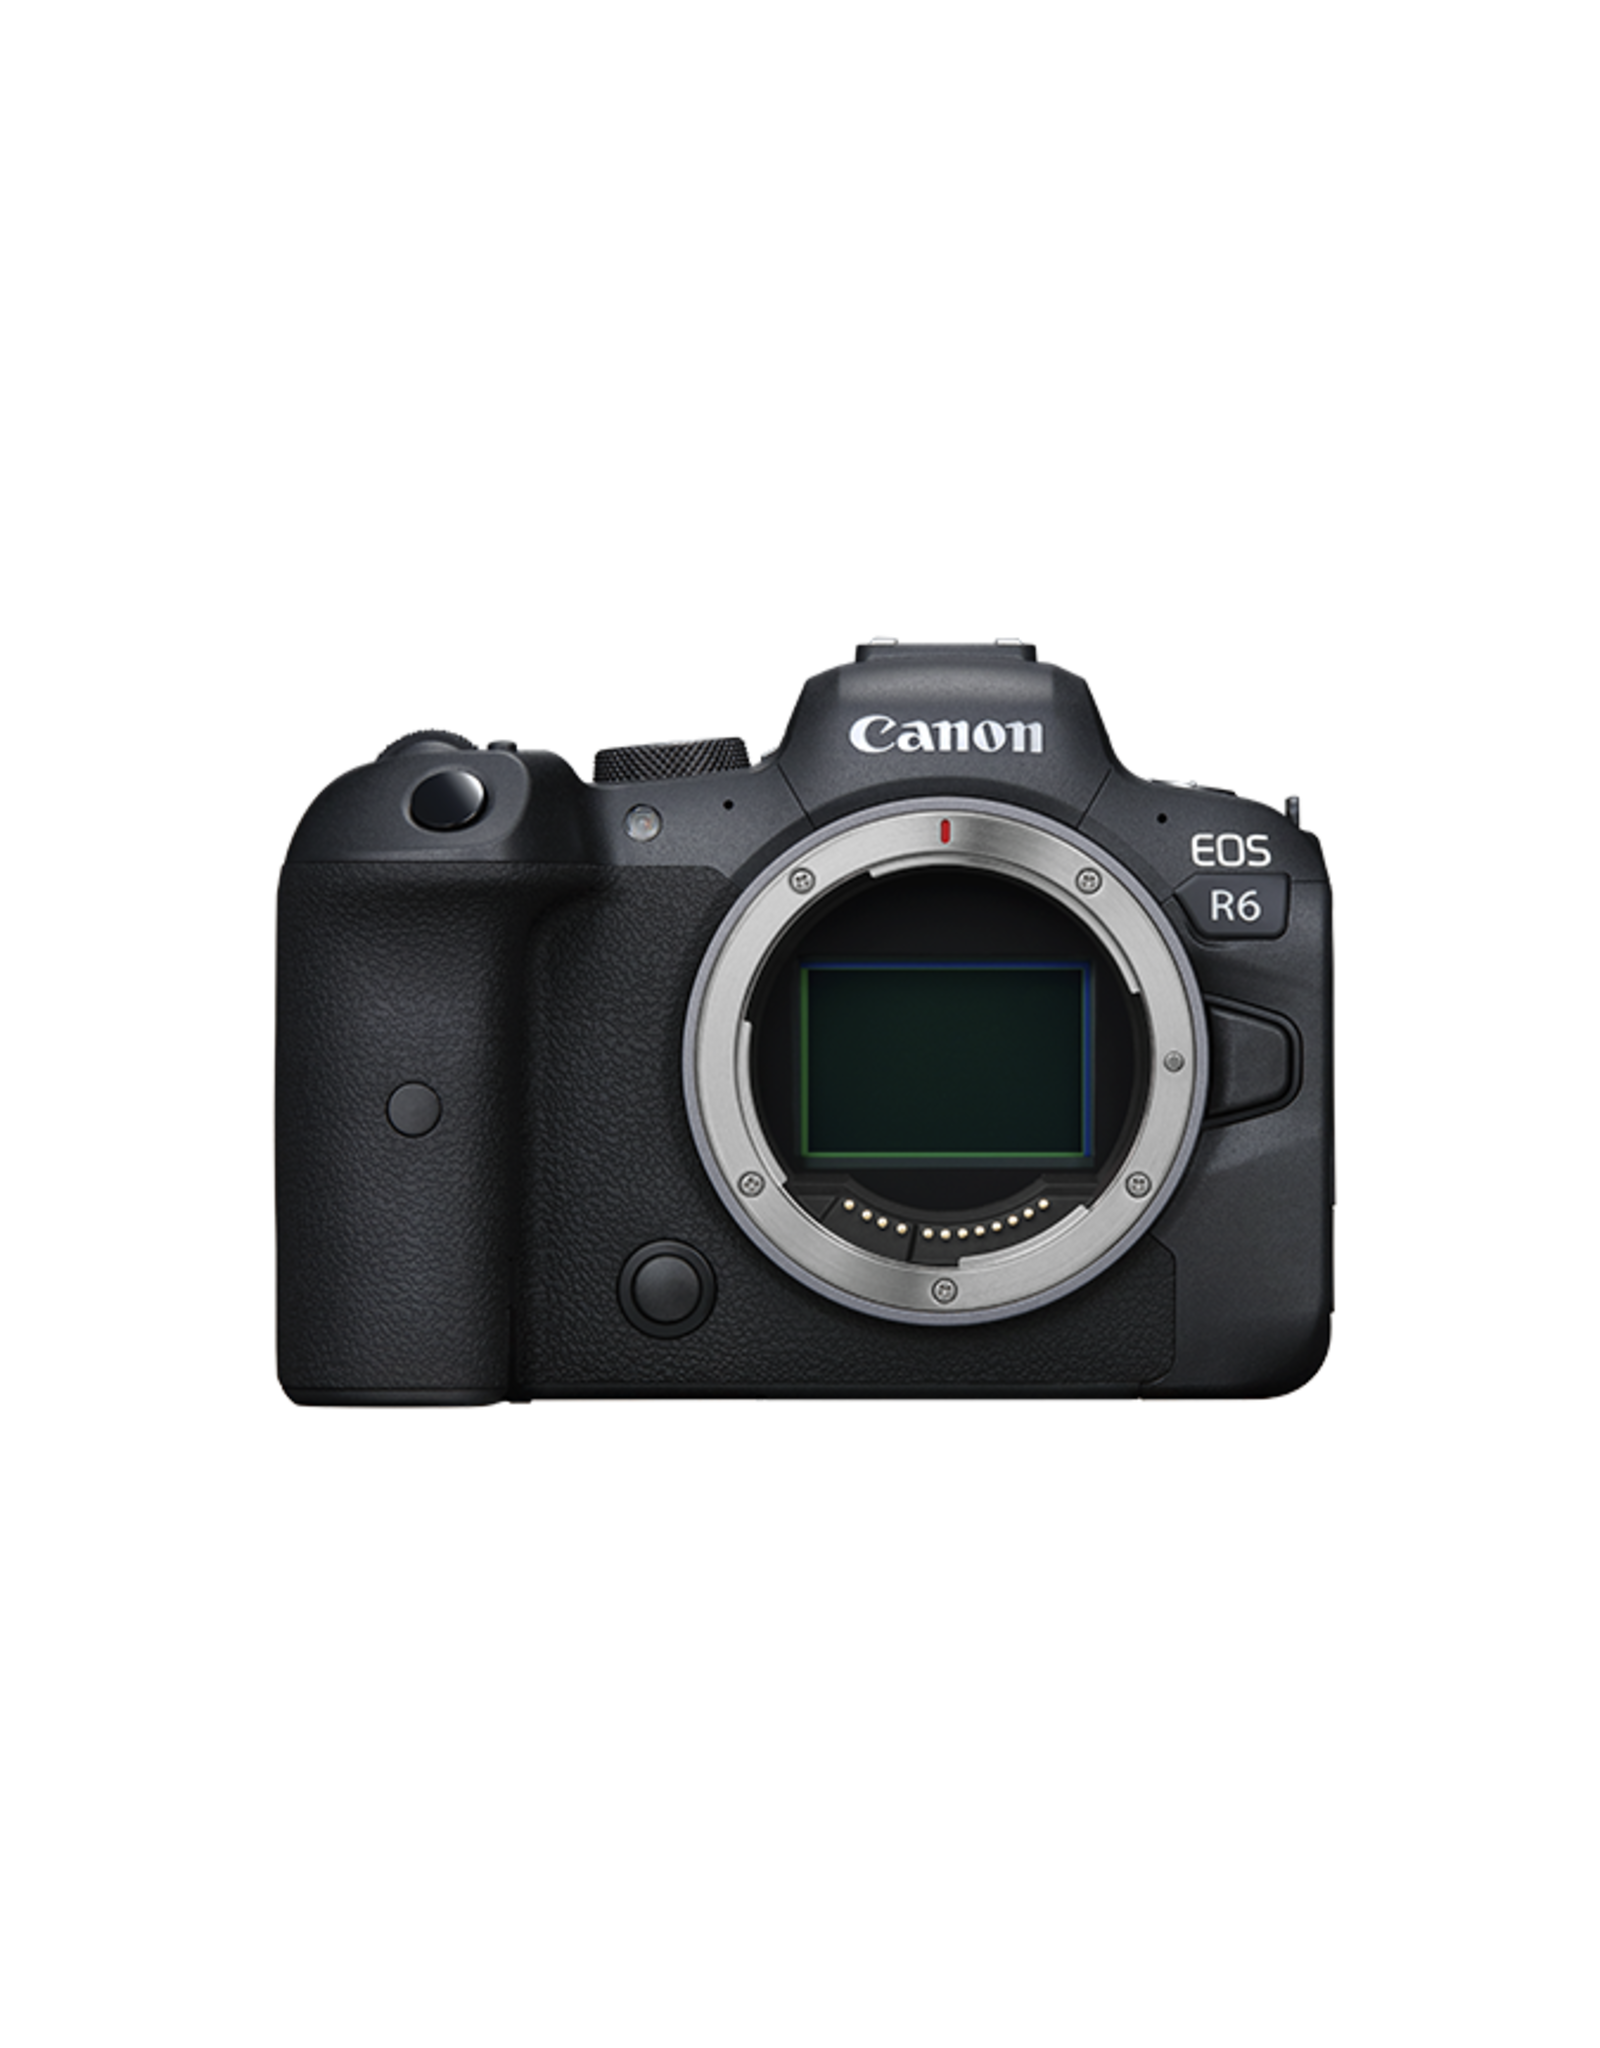 Canon Canon EOS R6 Mirrorless Camera with RF24-105mm Lens